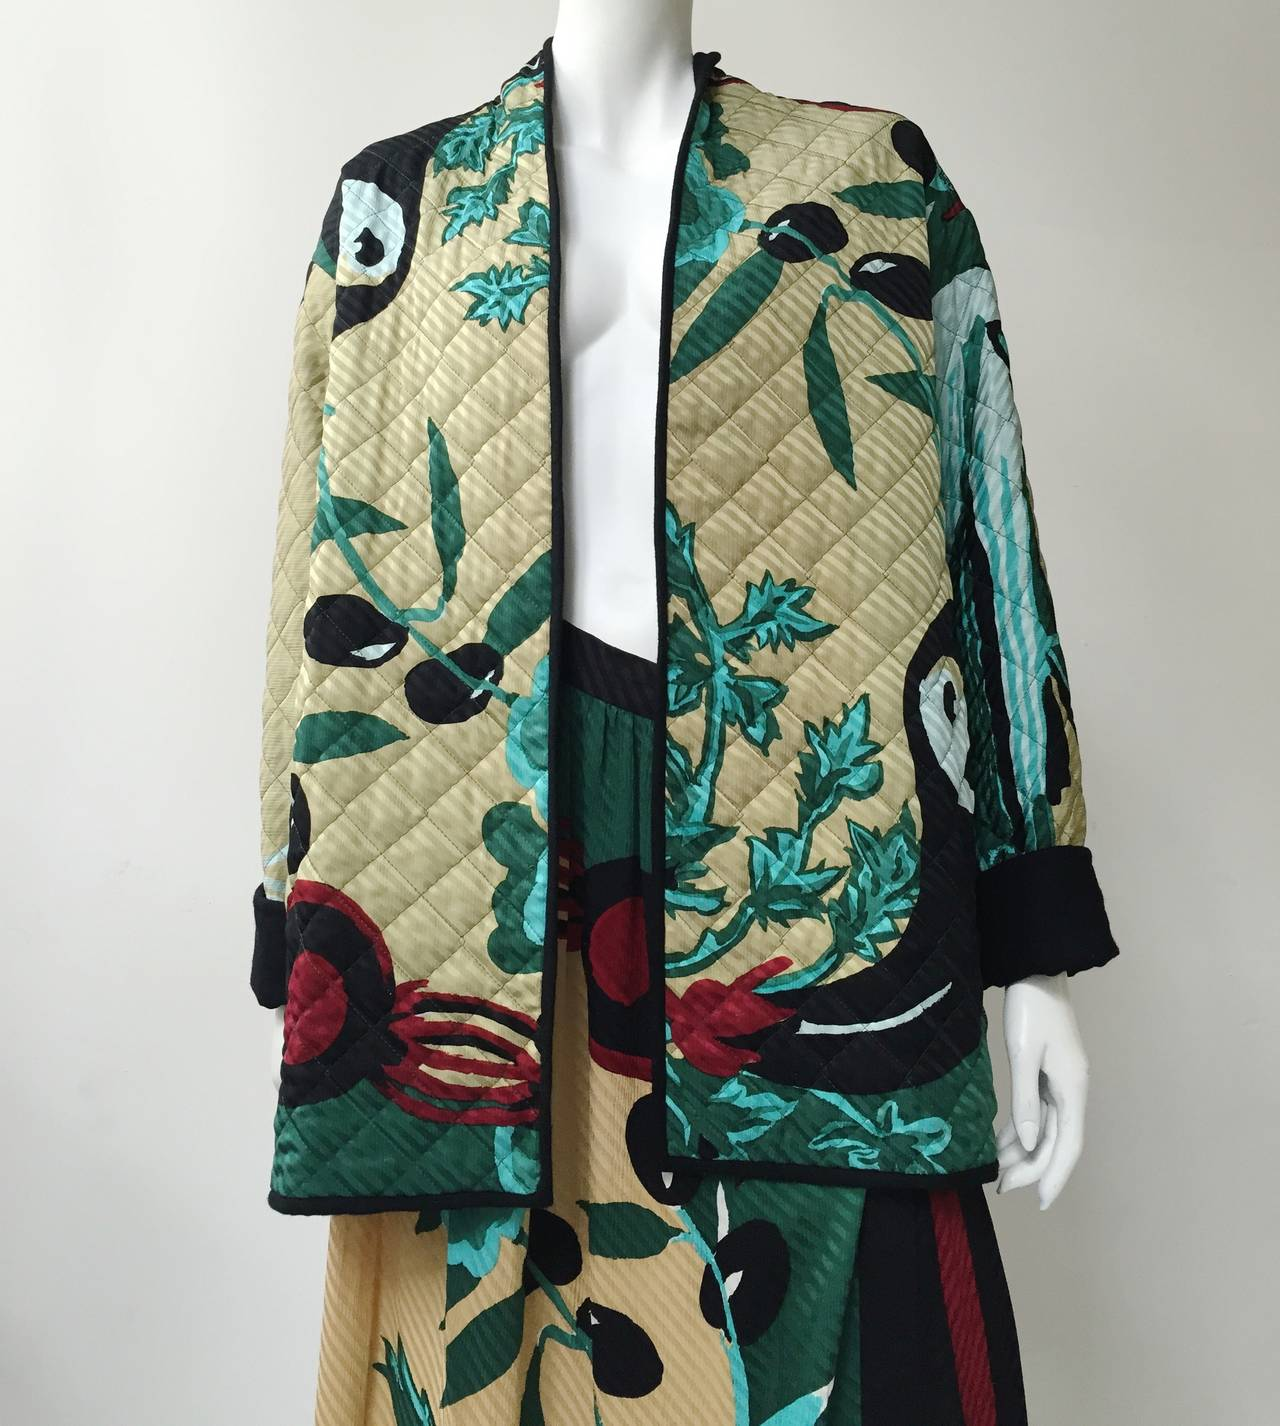 Michaele Vollbracht 80s silk Japanese garden theme quilted jacket & skirt size 10 but fits like a modern size 6 (please see & use measurements below). Jacket is 100% silk and 100% wool interior with pockets. Skirt is a wrap high waisted skirt with